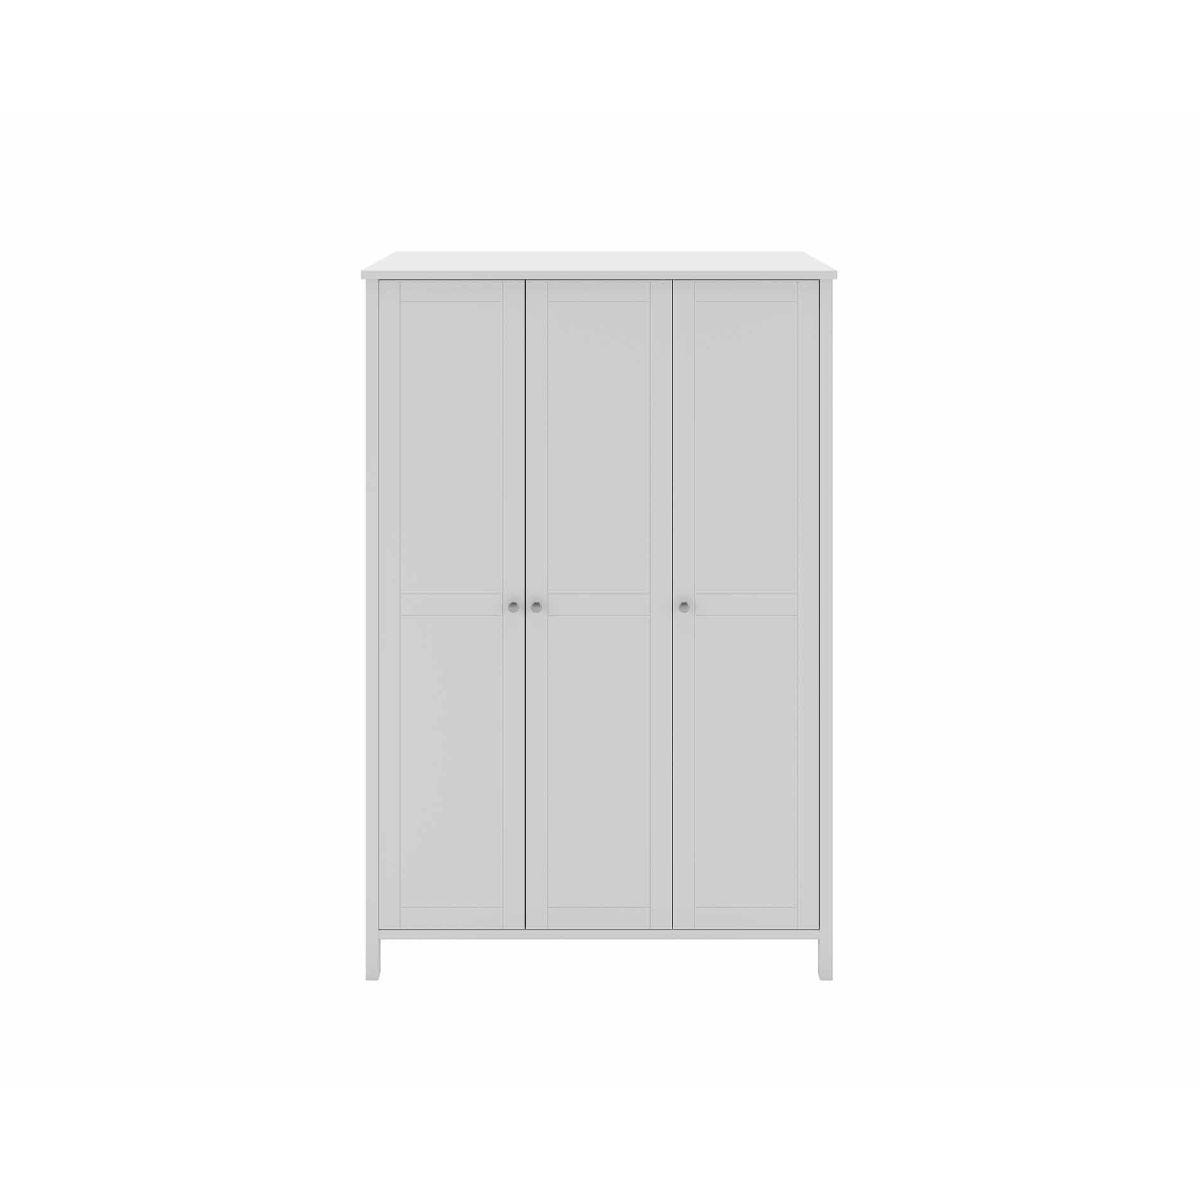 Steens Tromso 3 Door Wardrobe, White